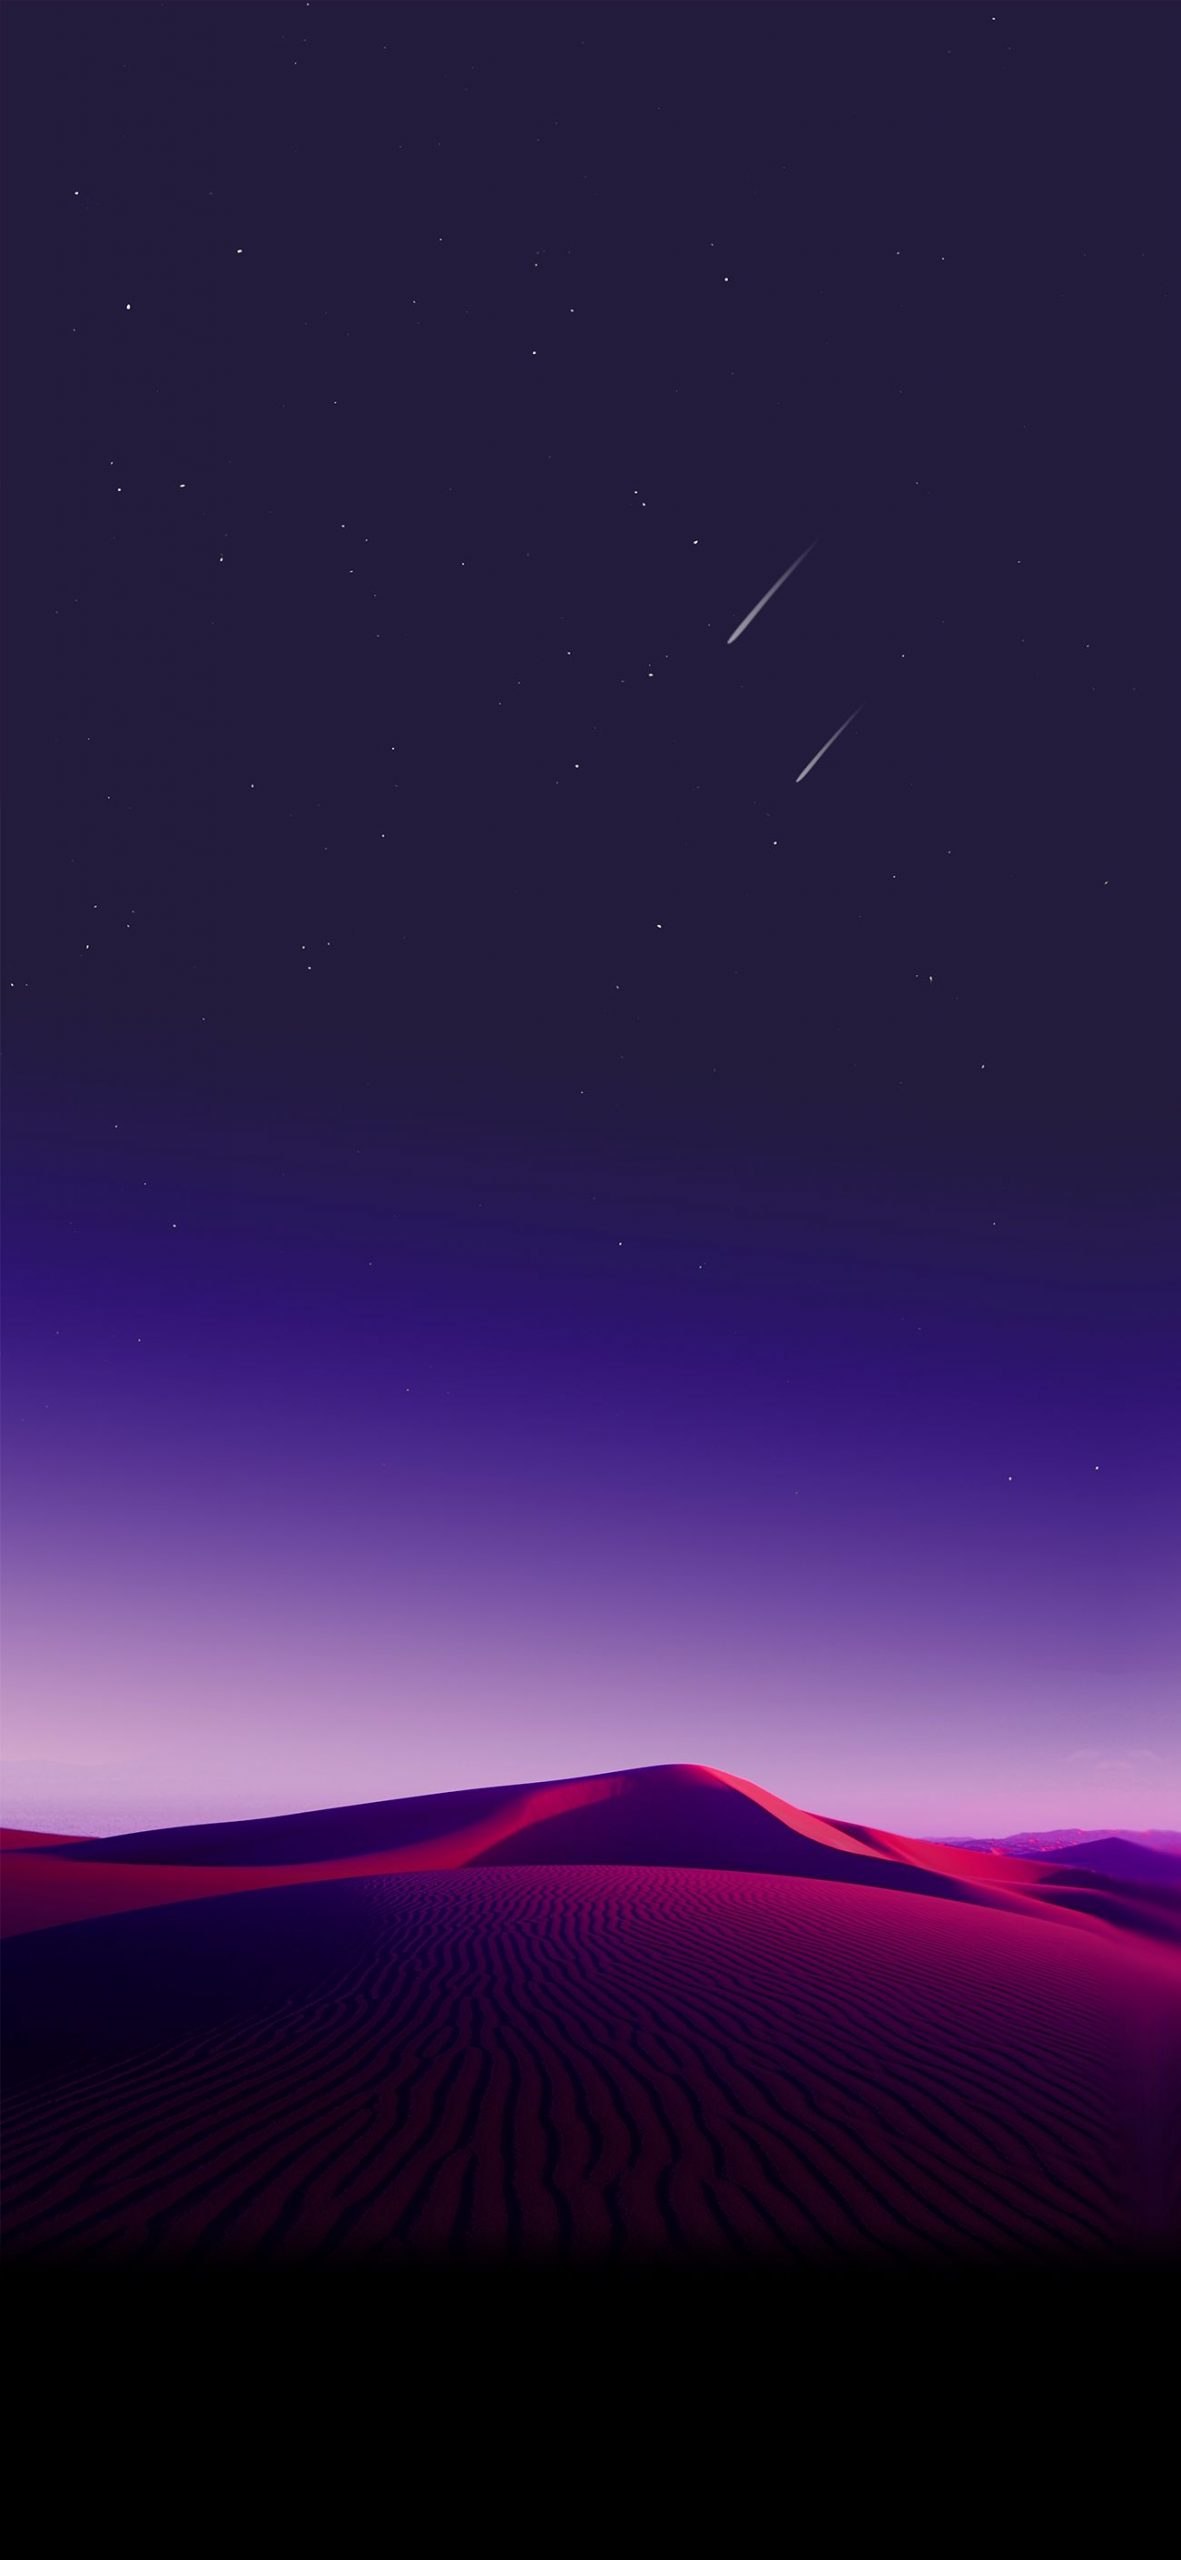 Gradient Sky Desert iPhone Wallpaper scaled